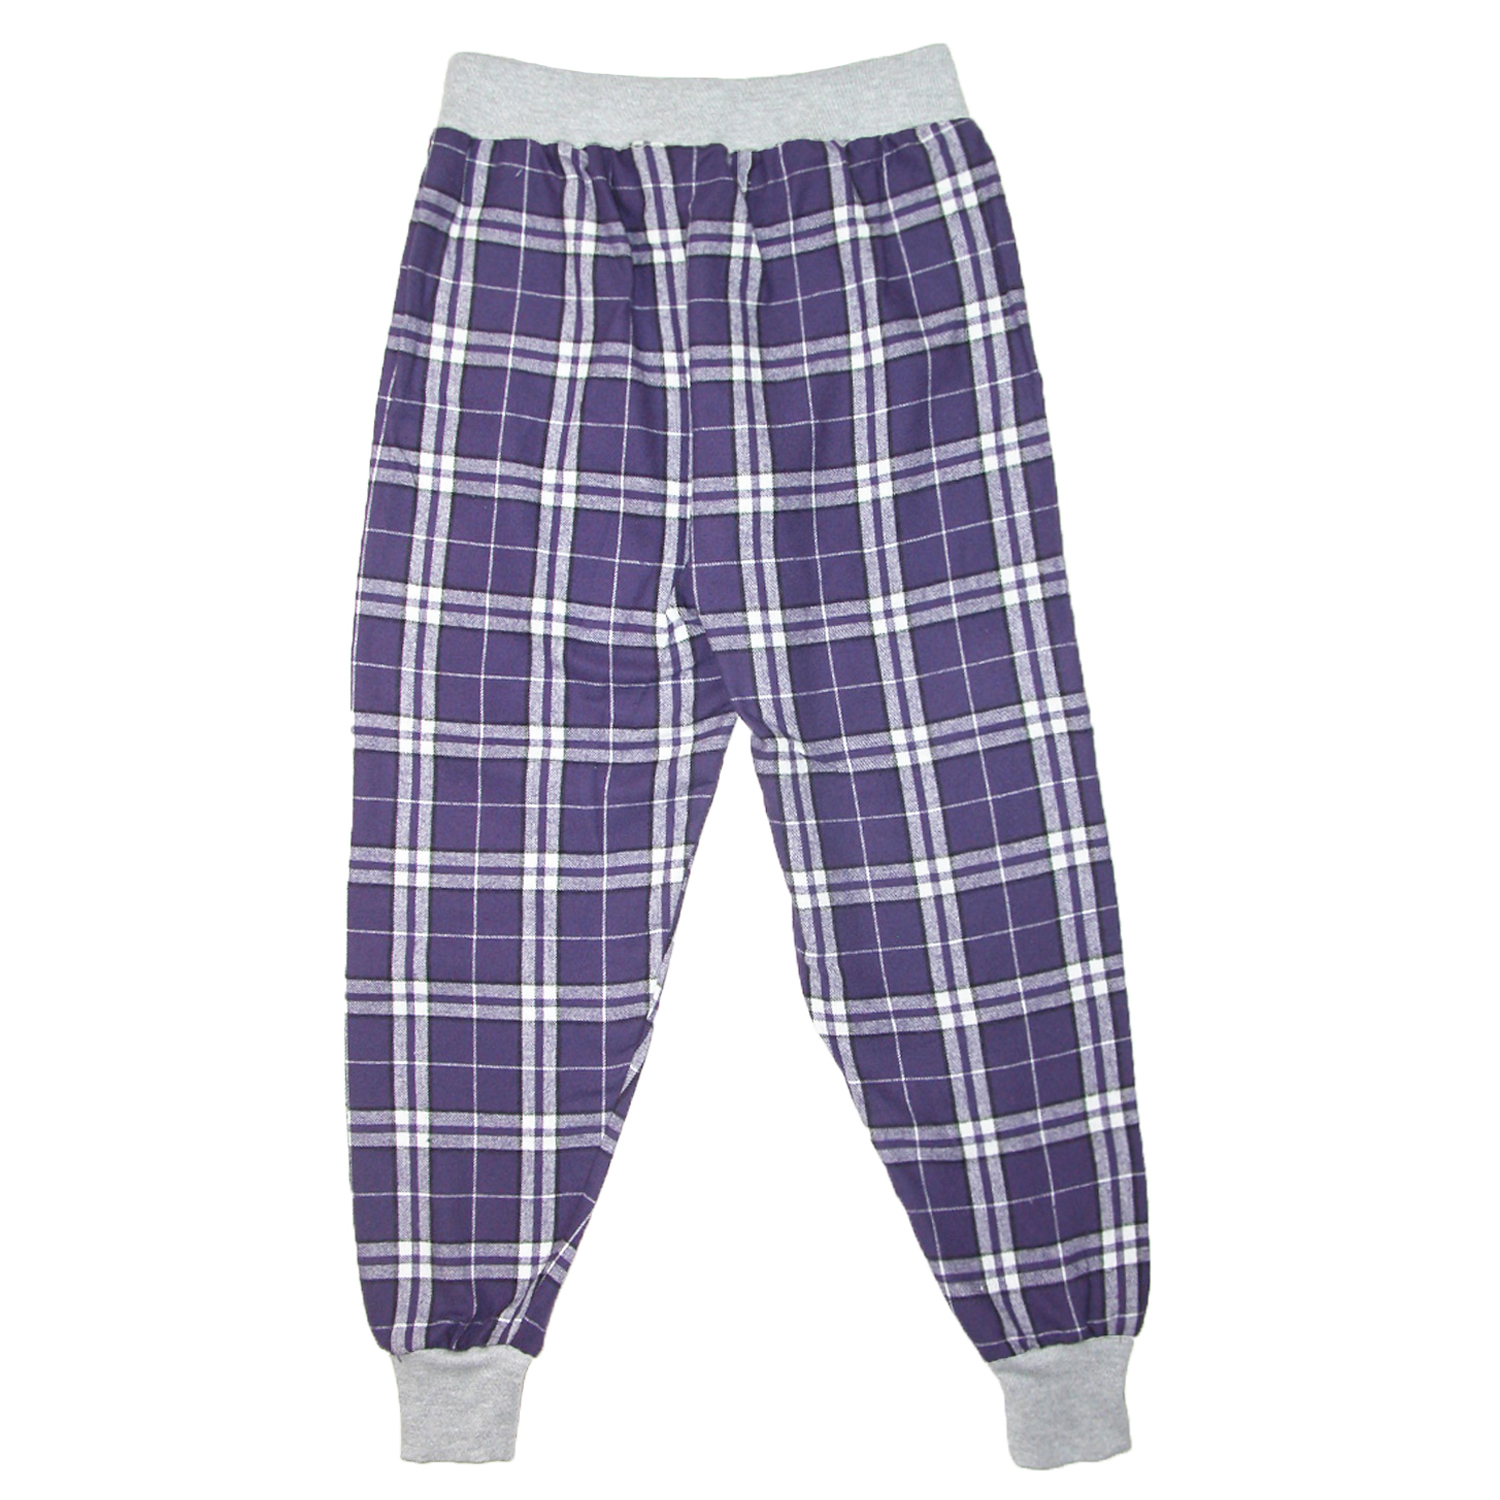 Boxercraft Girls' Flannel Jogger Pants